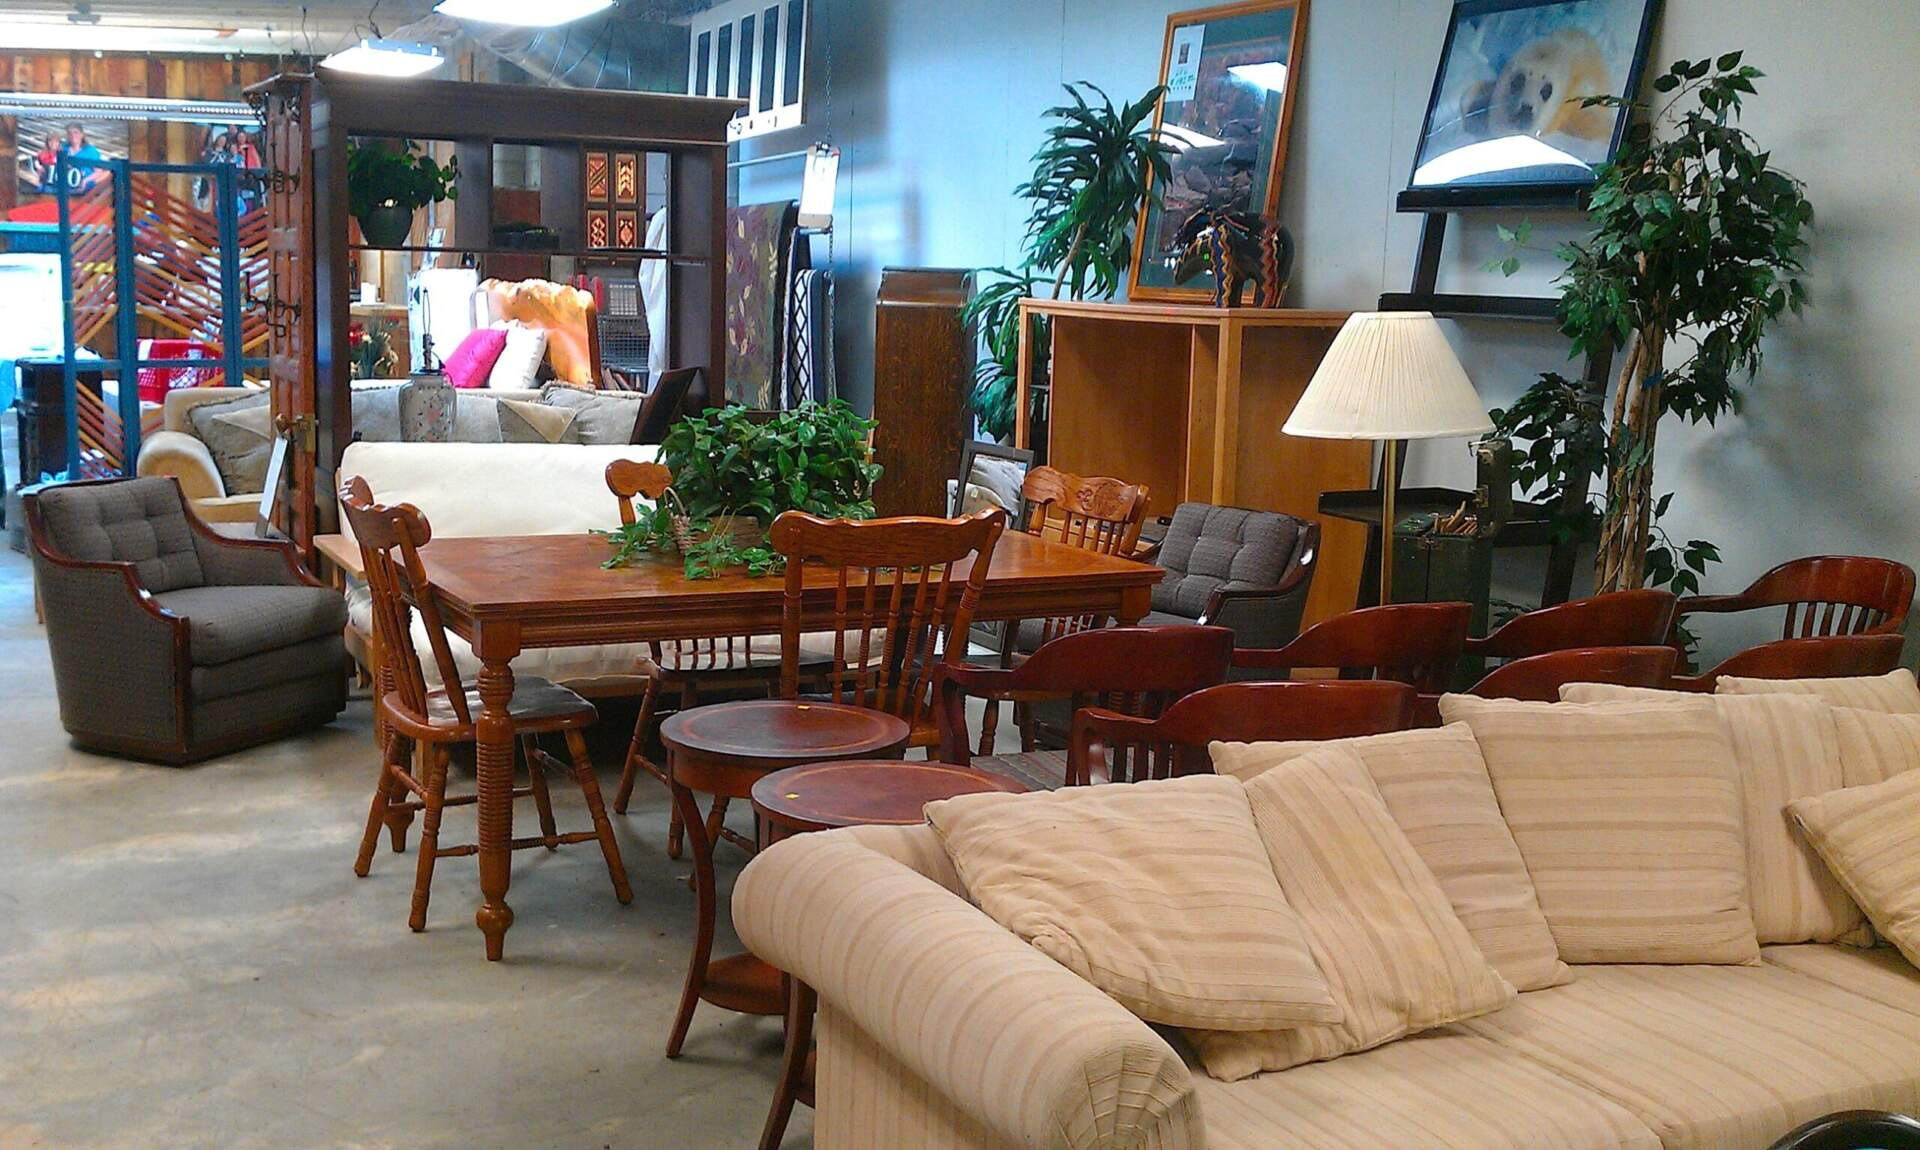 New Habitat for Humanity ReStore Opens in Bend OR